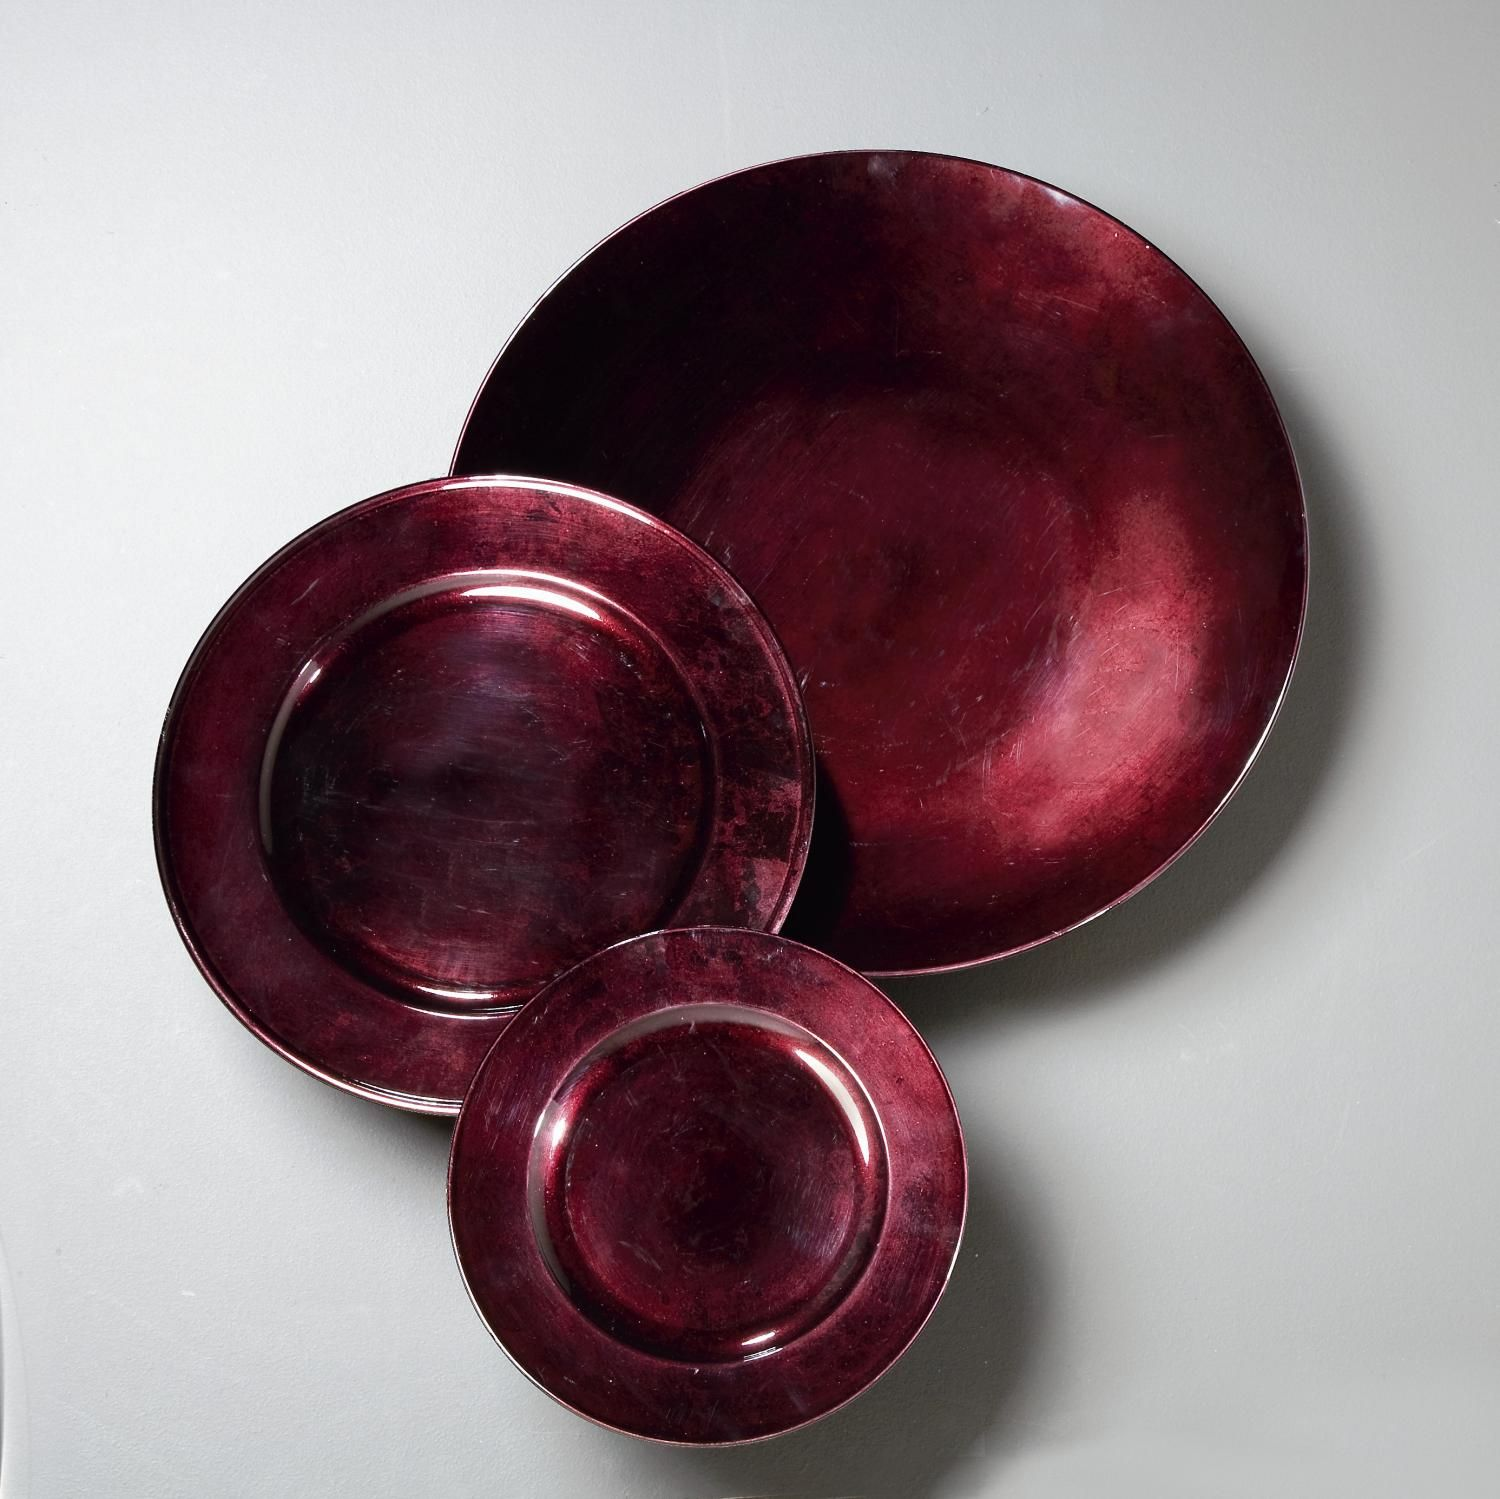 $1.75 Each 19082 Large Plum Charger Plate 13 dia - Food Safe / Purchase Minimum & $1.75 Each 19082 Large Plum Charger Plate 13